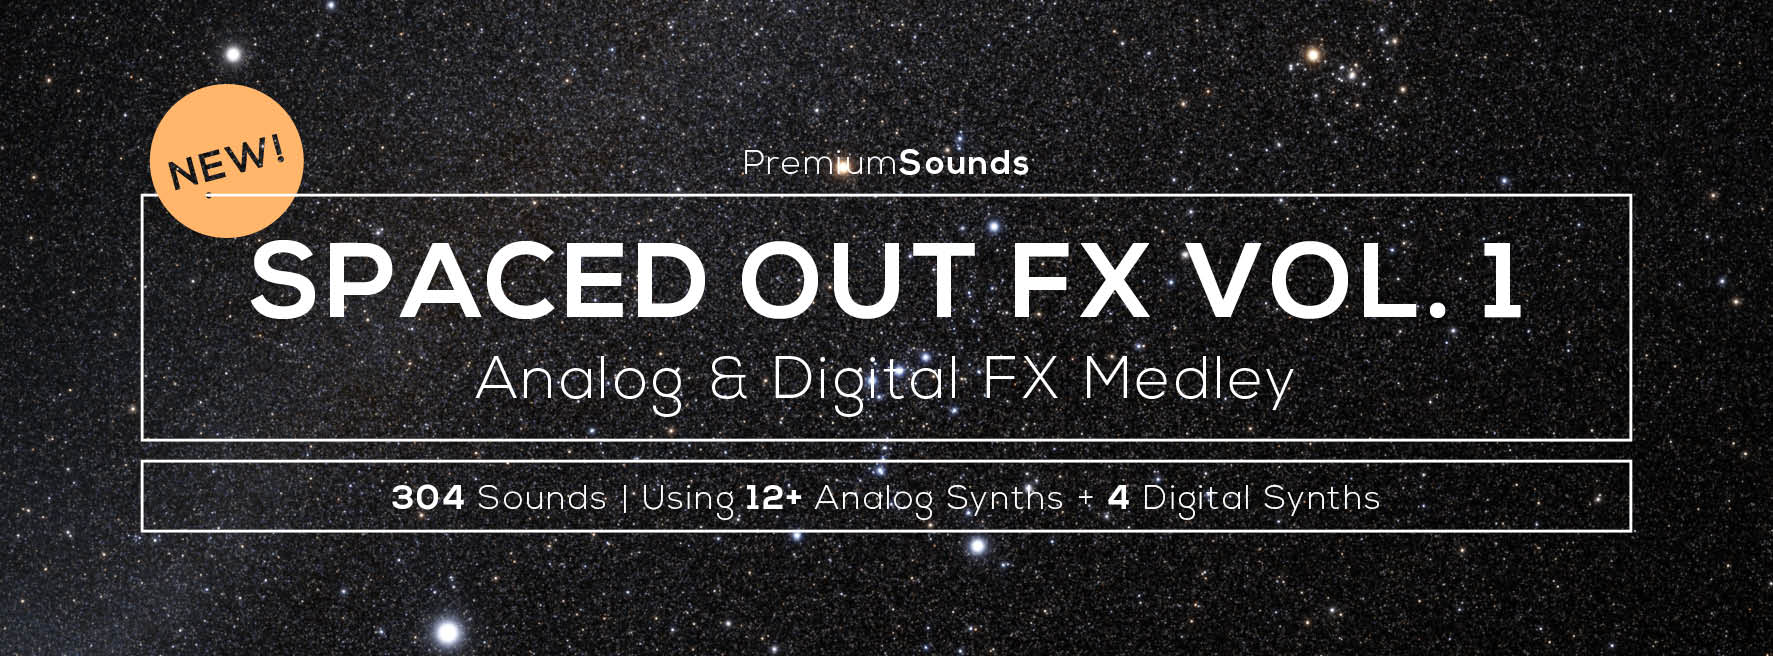 Spaced Out Fx Vol.1